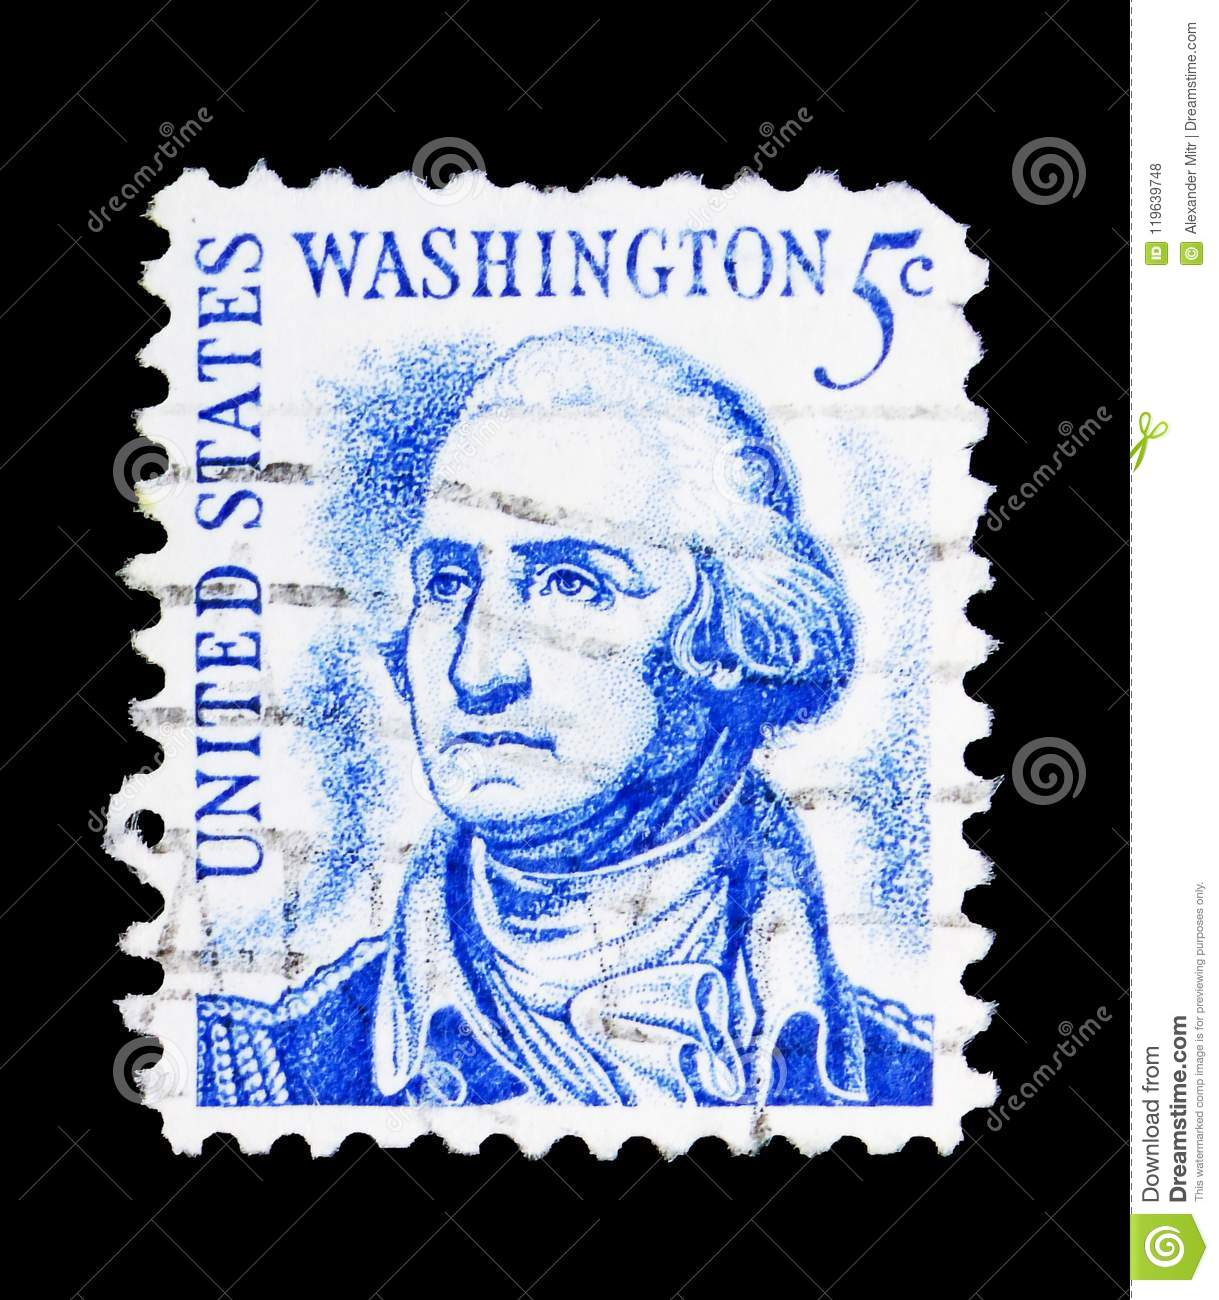 George Washington (1732-1799), 1st President, Famous Americans s